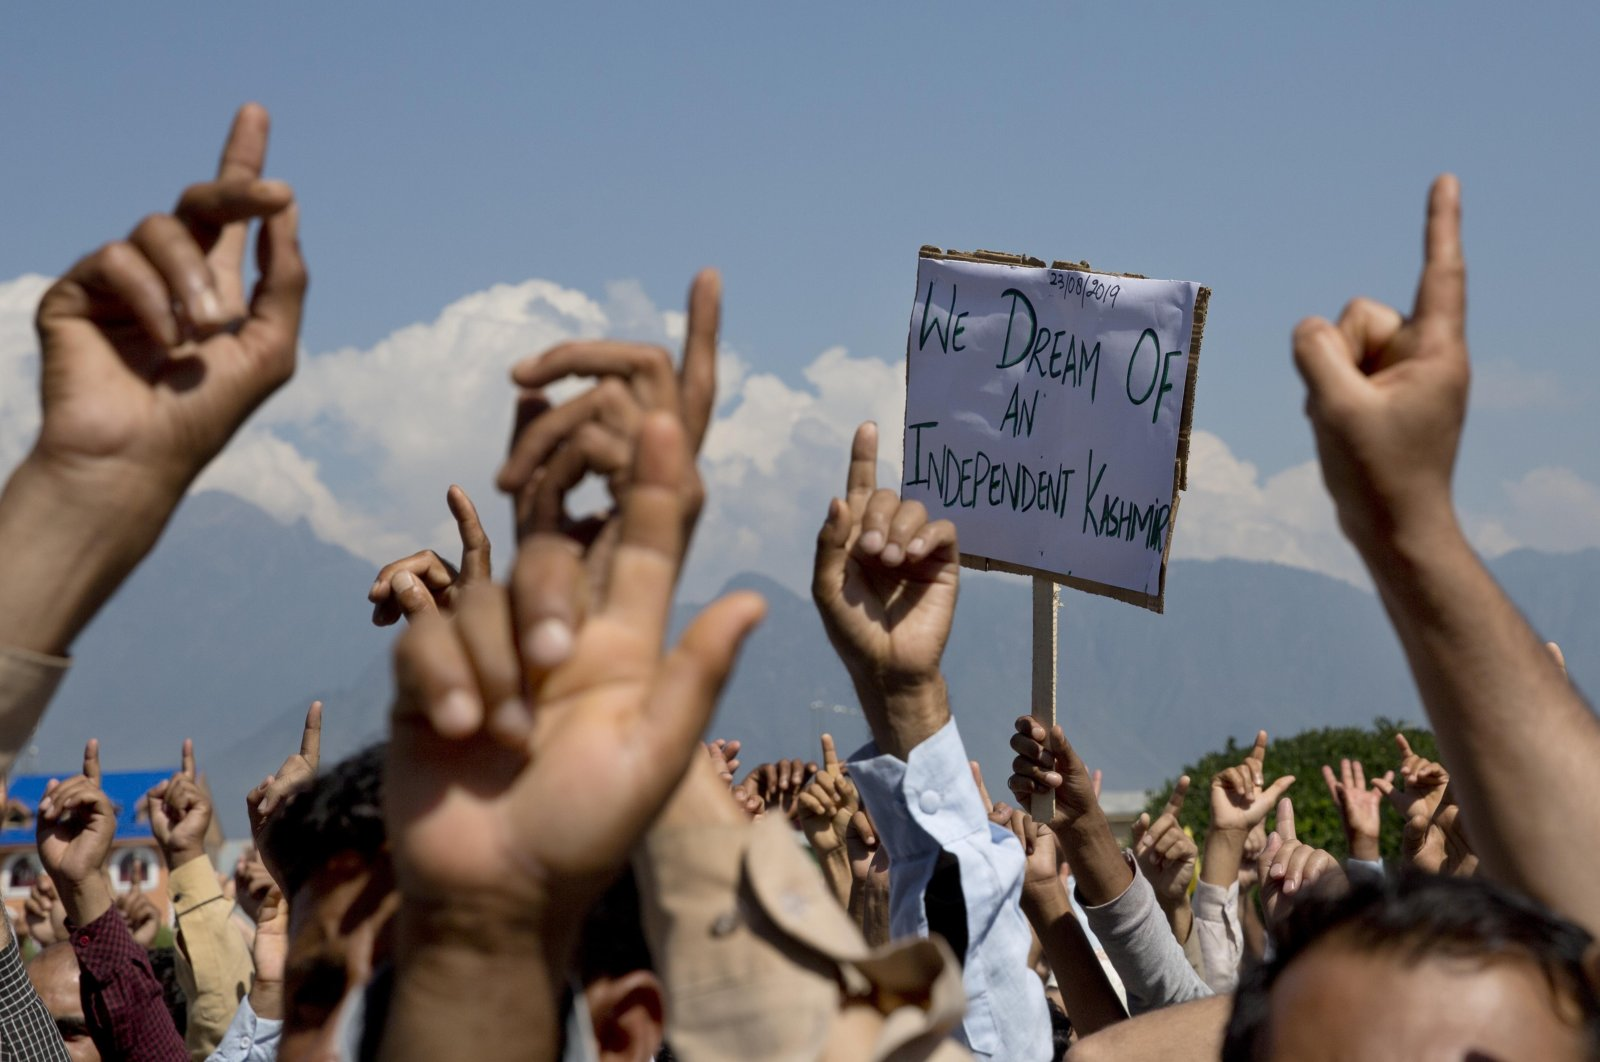 Kashmiris shout freedom slogans during a protest against New Delhi's tightened grip on the disputed region, after Friday prayers on the outskirts of Srinagar, Indian controlled Kashmir, Aug. 23, 2019. (AP Photo)